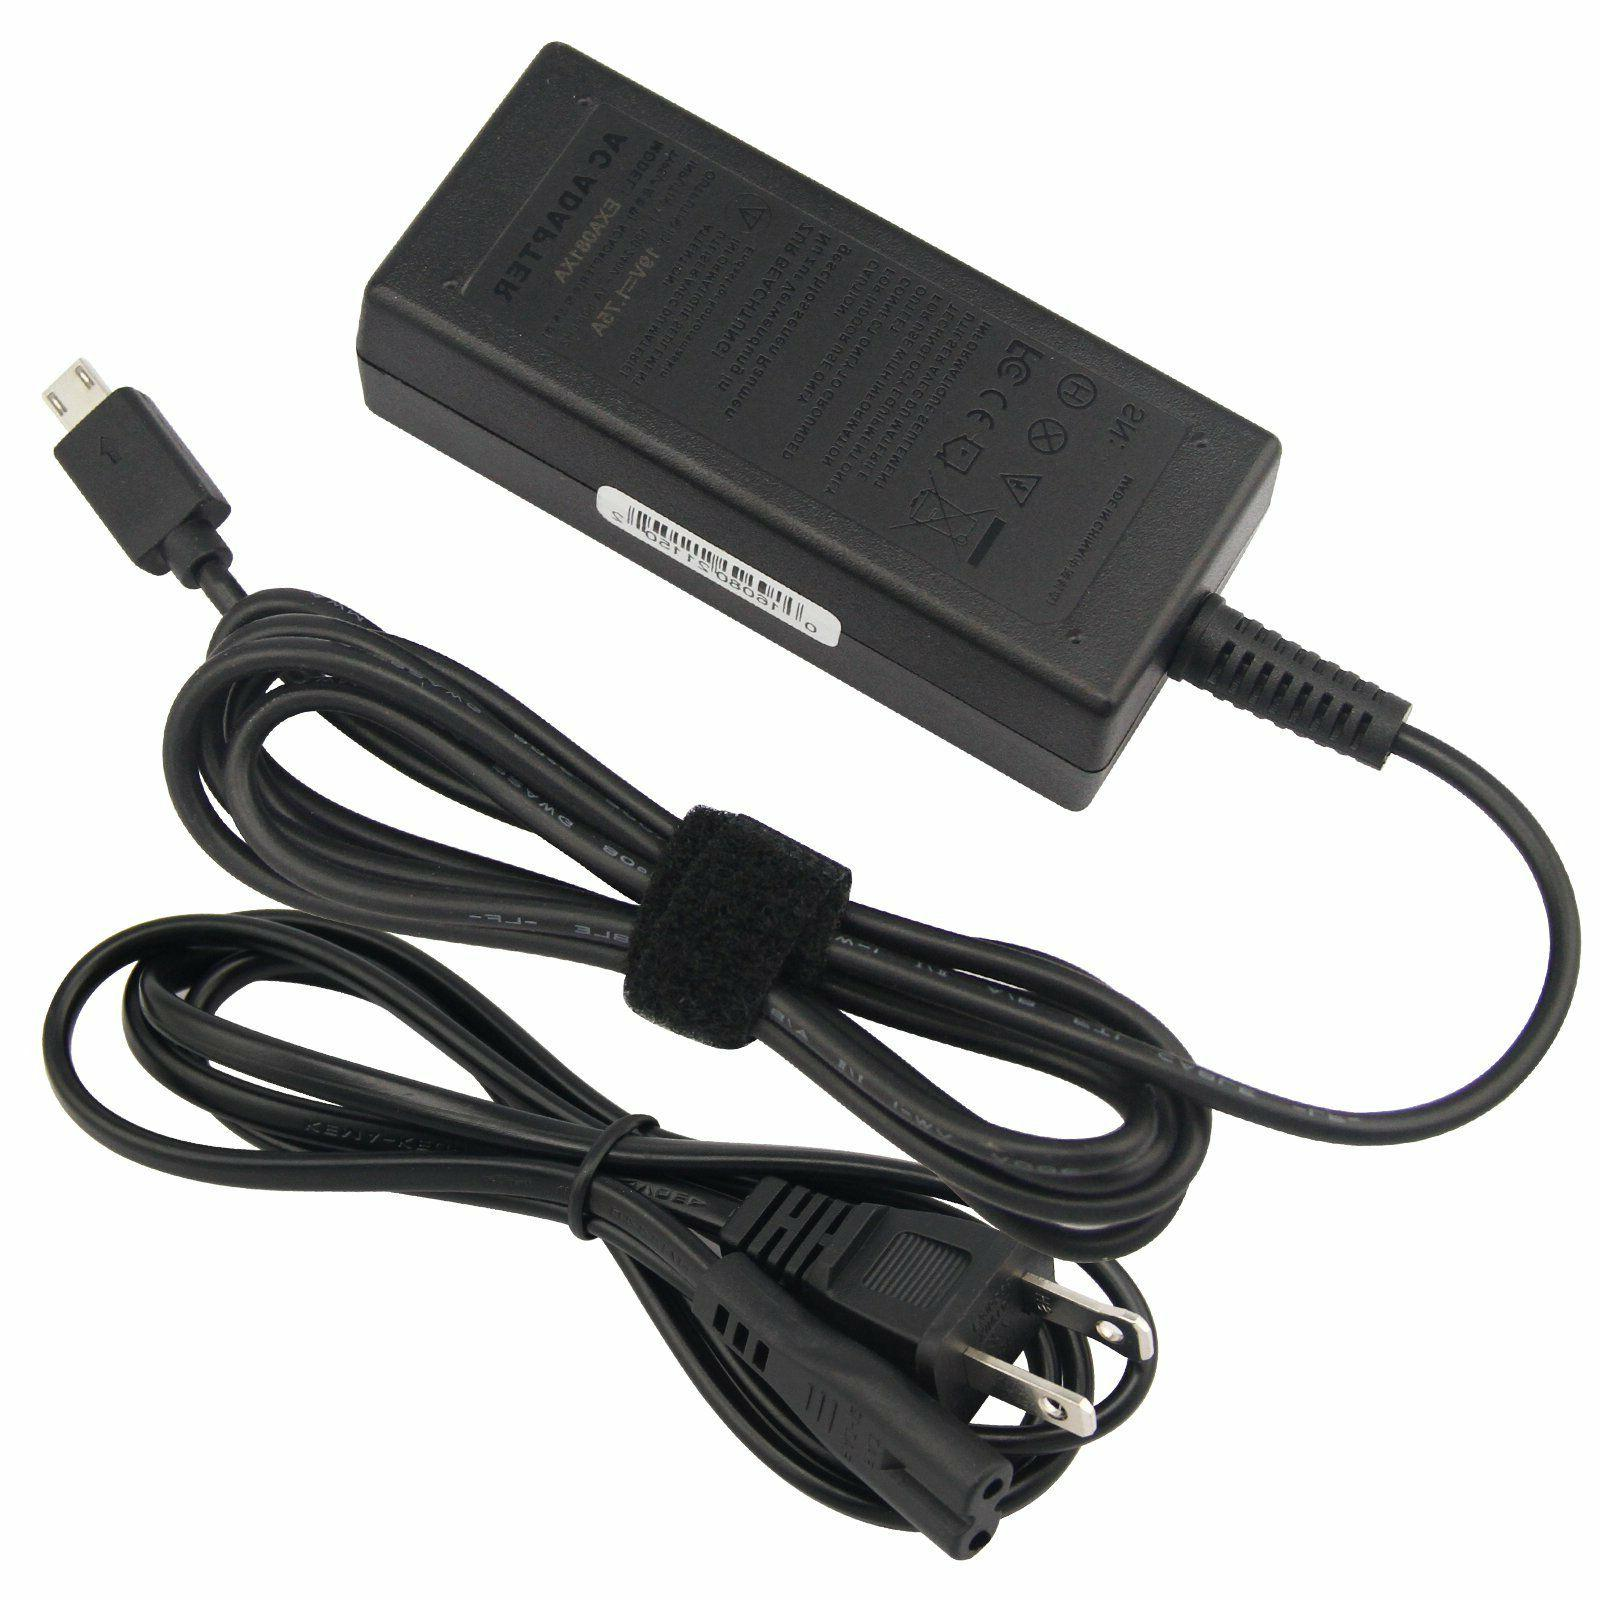 for Asus C100 Adapter Charger 24W